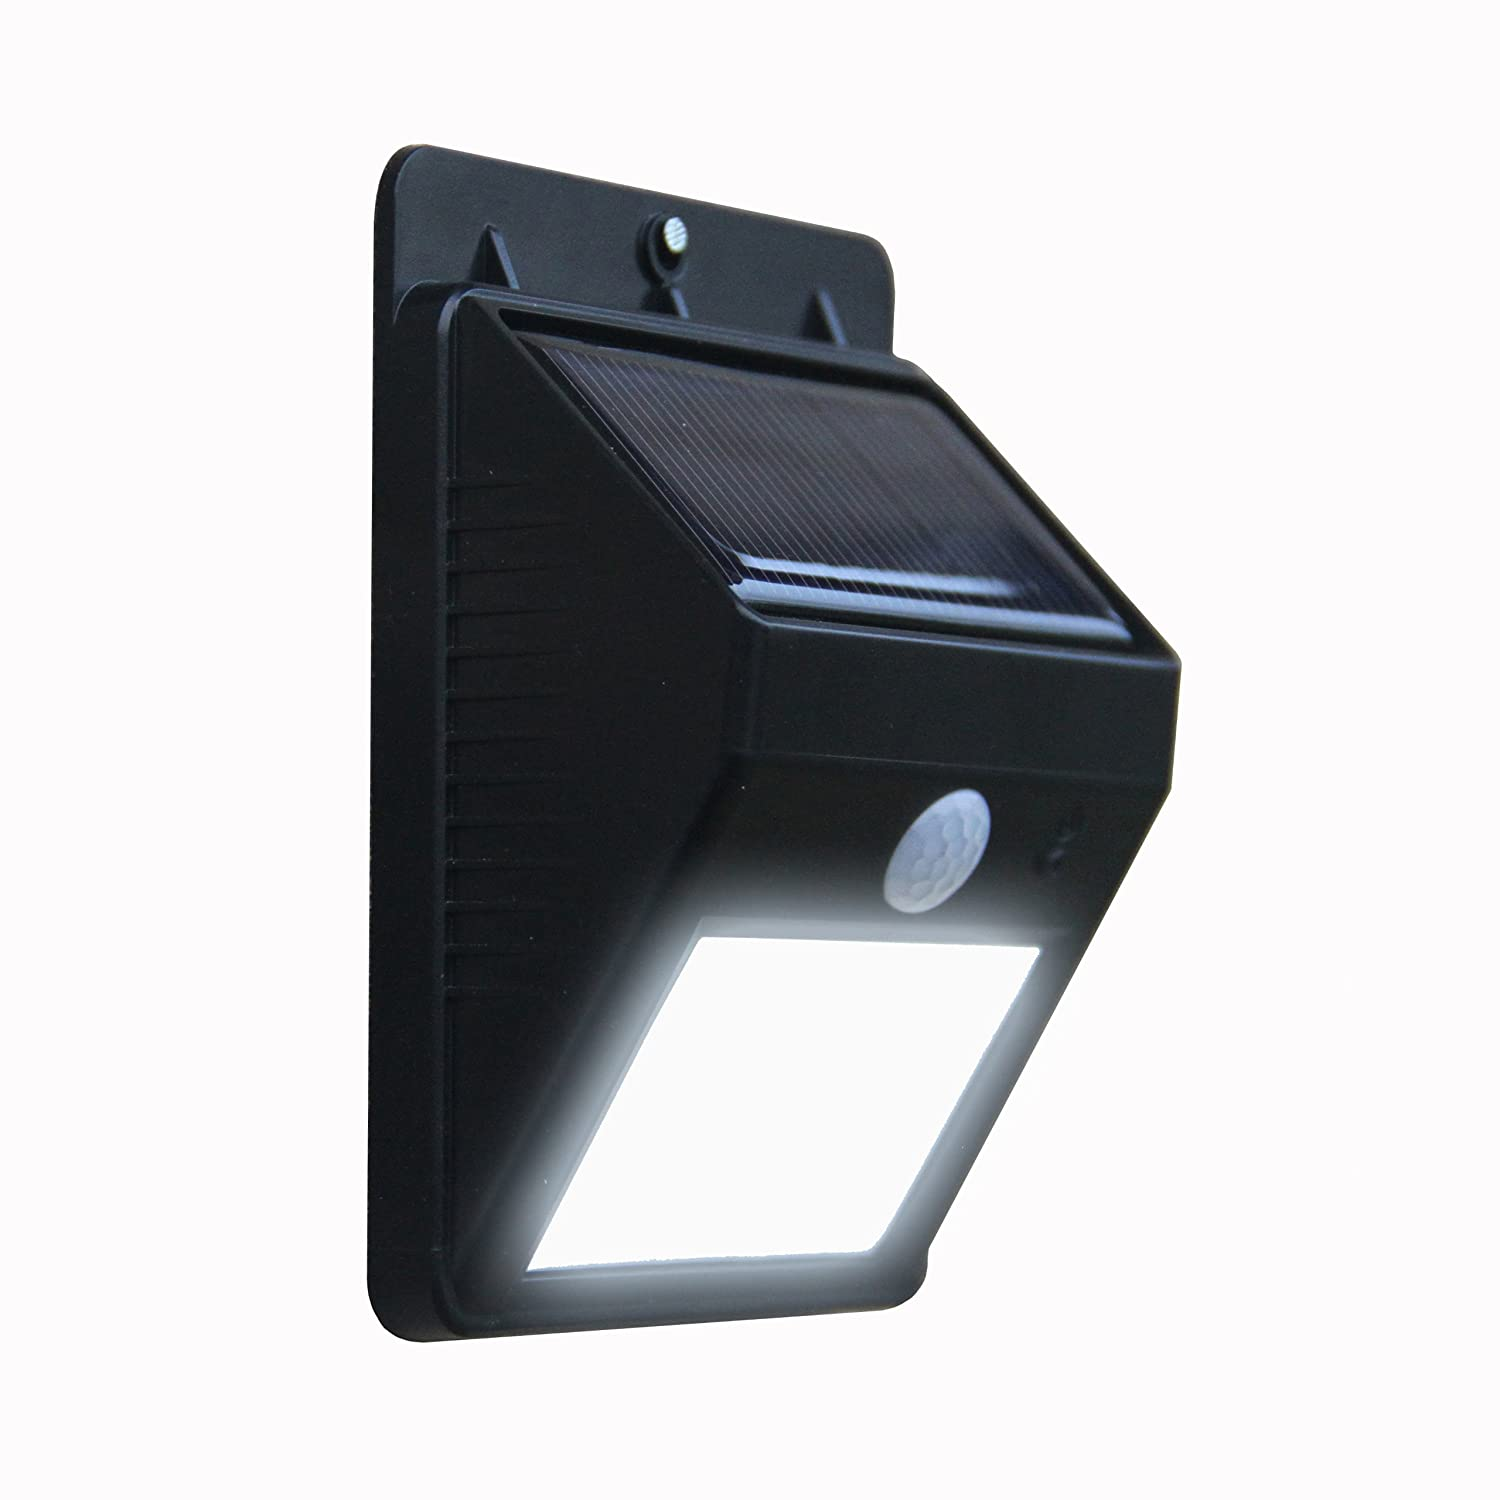 Outdoor LED Wireless Solar Powered Motion Sensor Light Security Lamp Detector eBay